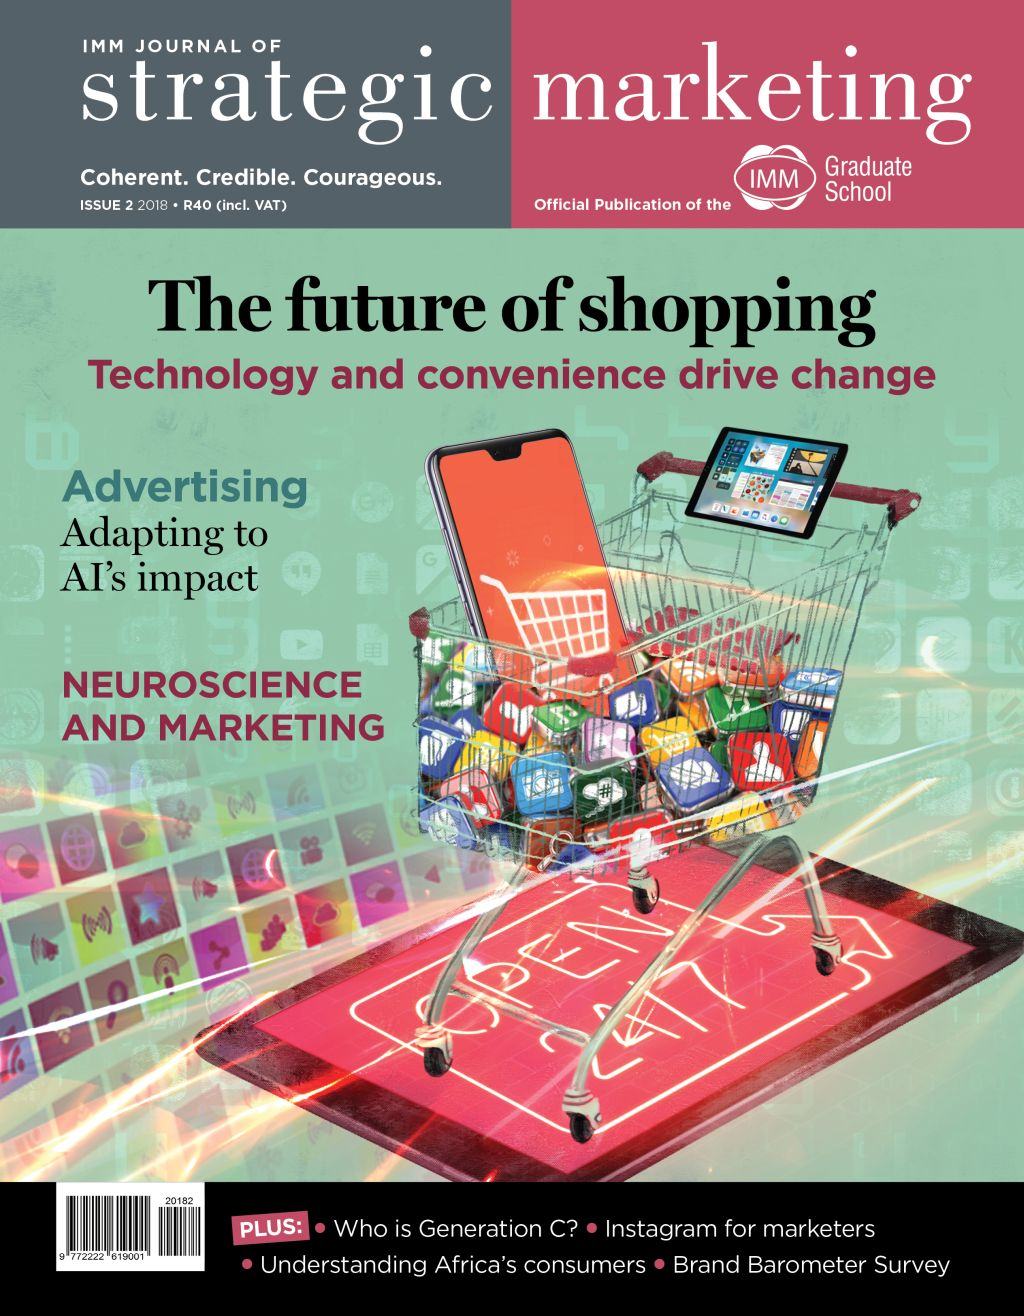 TECHNOLOGY AND CONVENIENCE DEFINE THE NEW FACE OF RETAILING